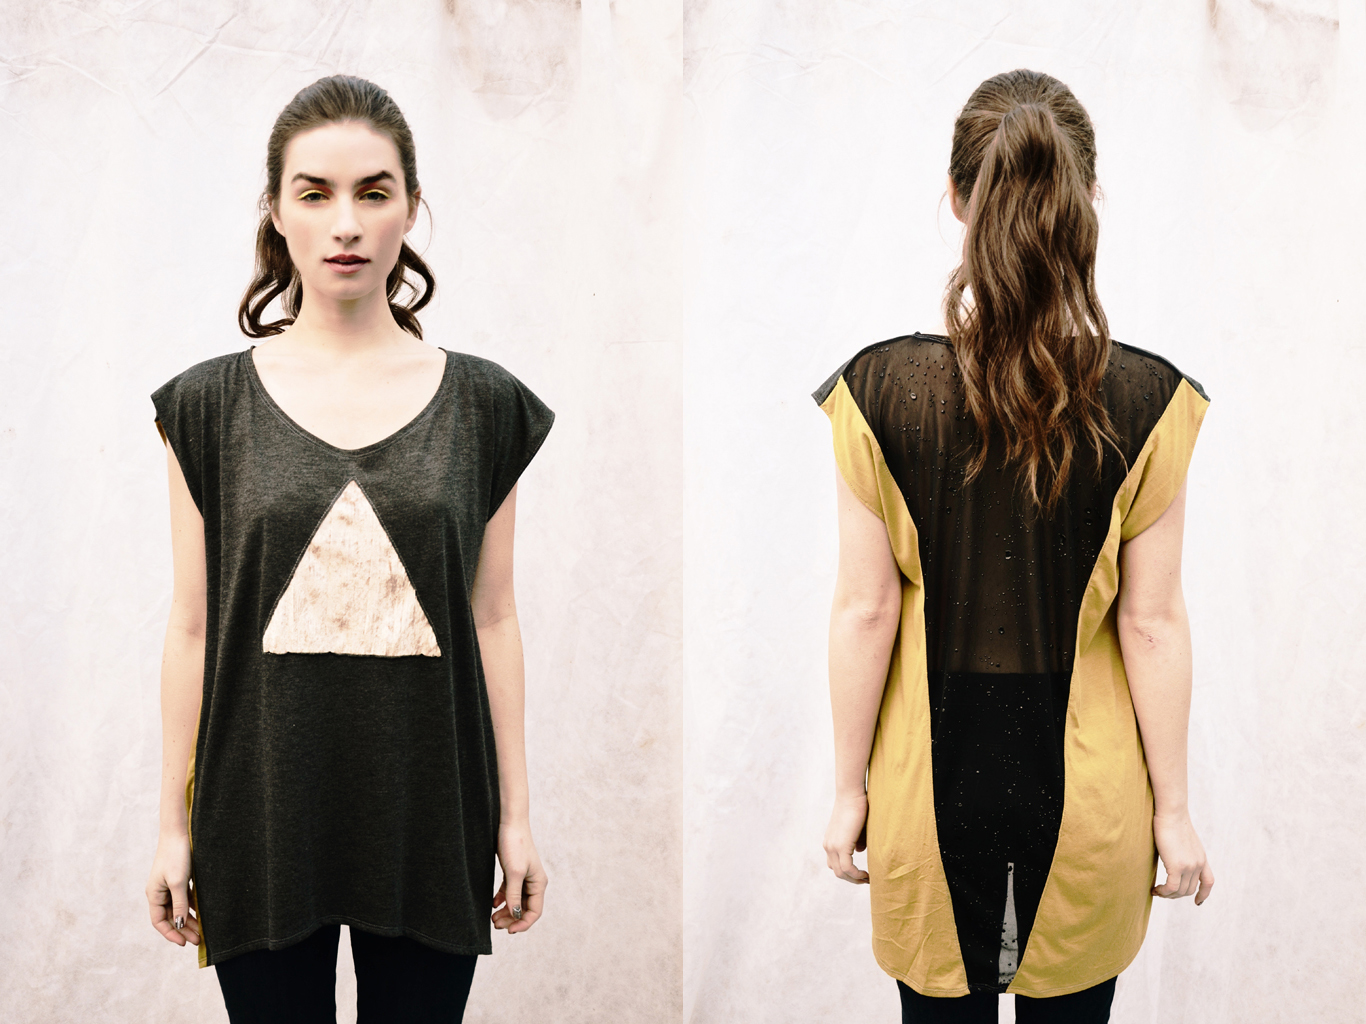 lookbook shoot for asuyeta by erika astrid